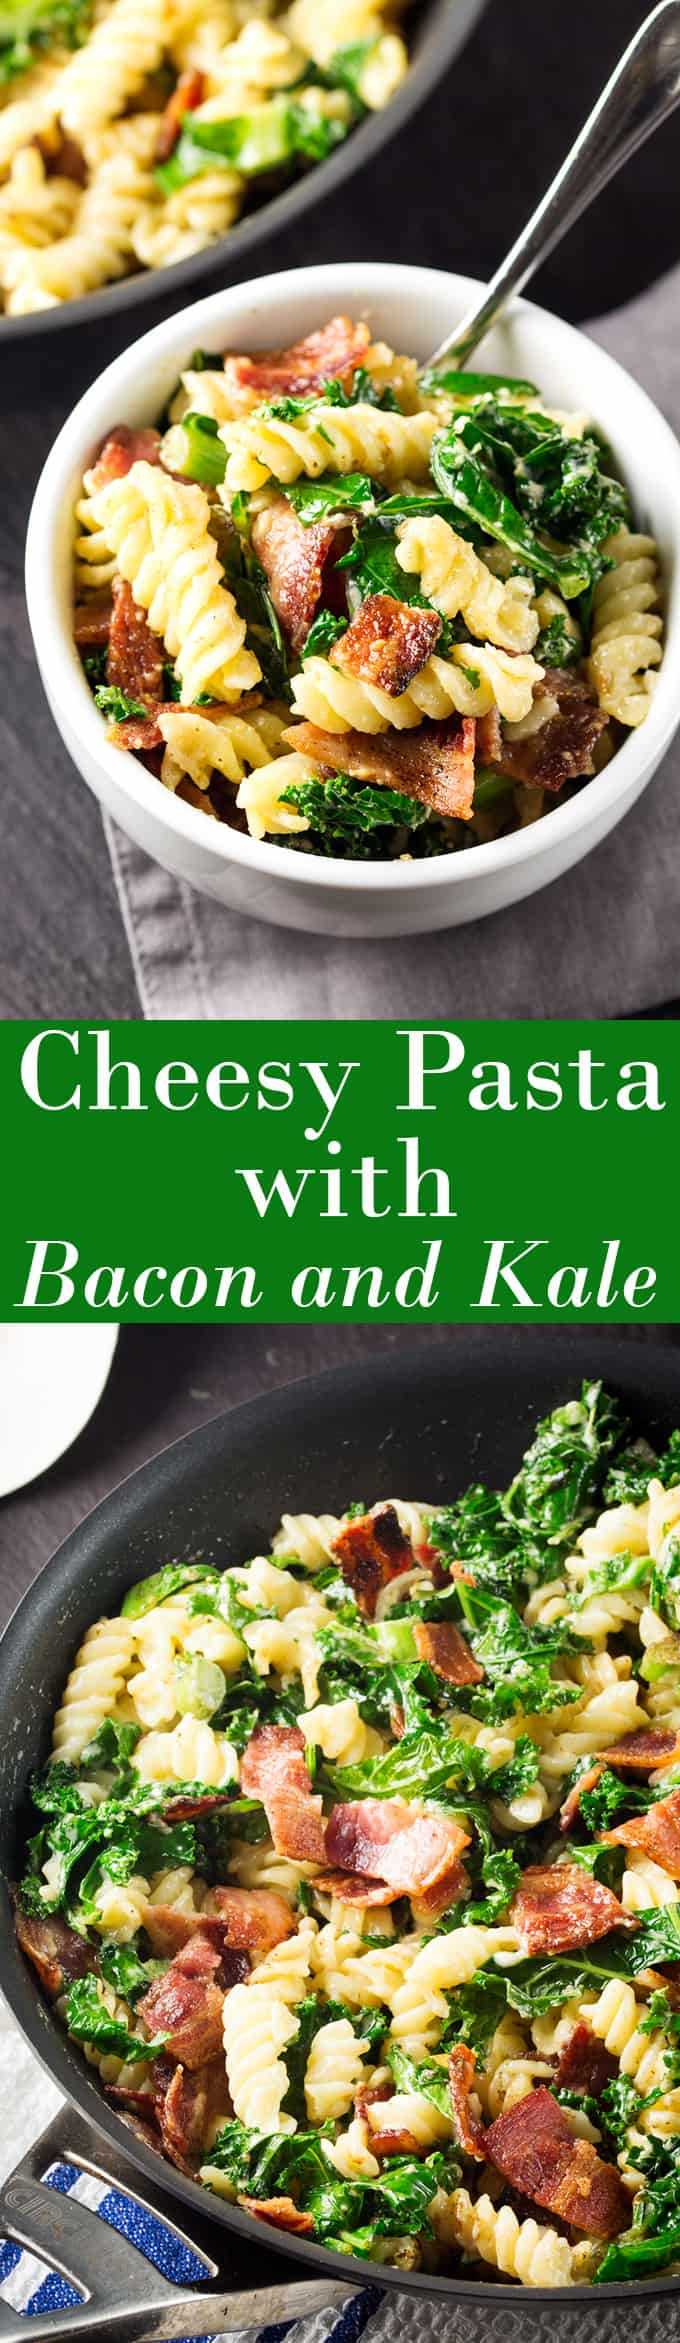 Cheesy Pasta with Bacon and Kale - ready in 15 minutes!